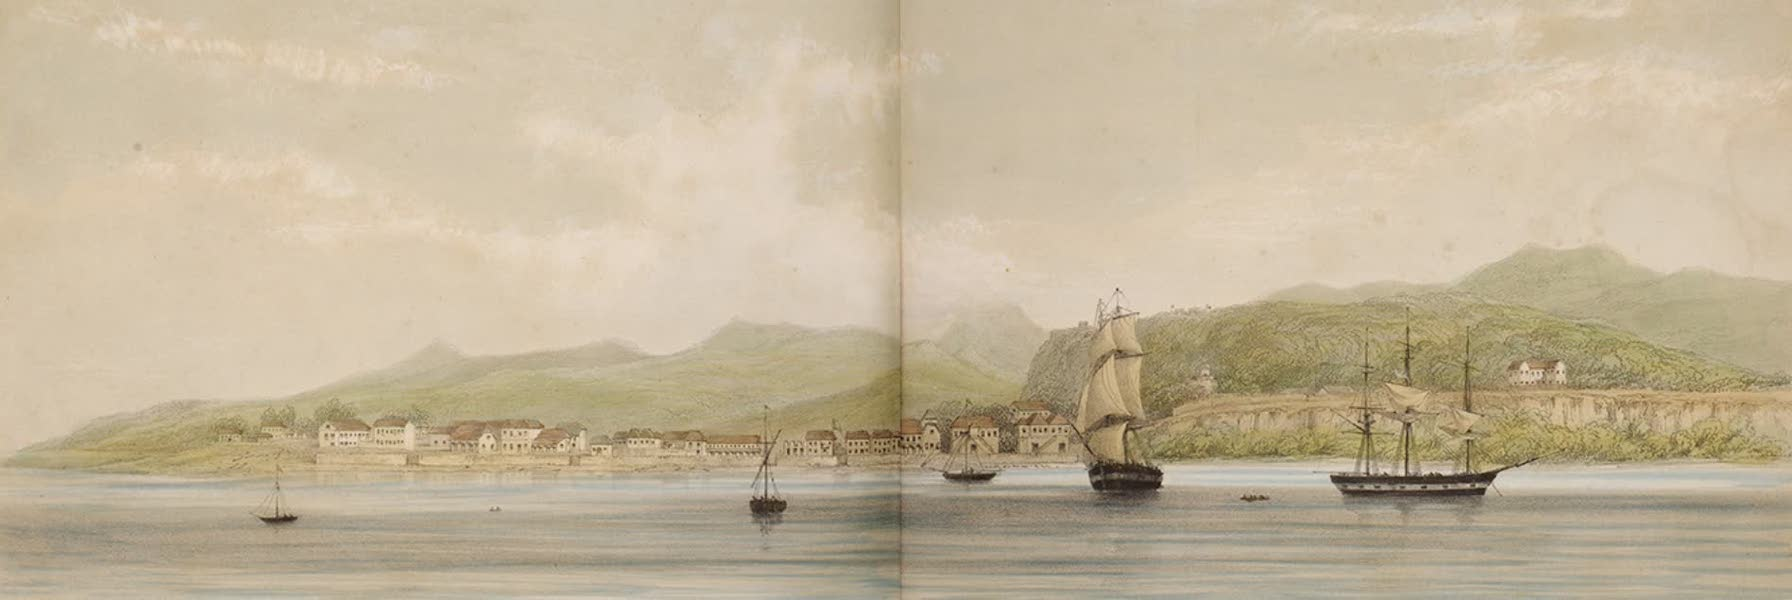 Views of the Island of Dominica - Roseau from the Sea (1849)